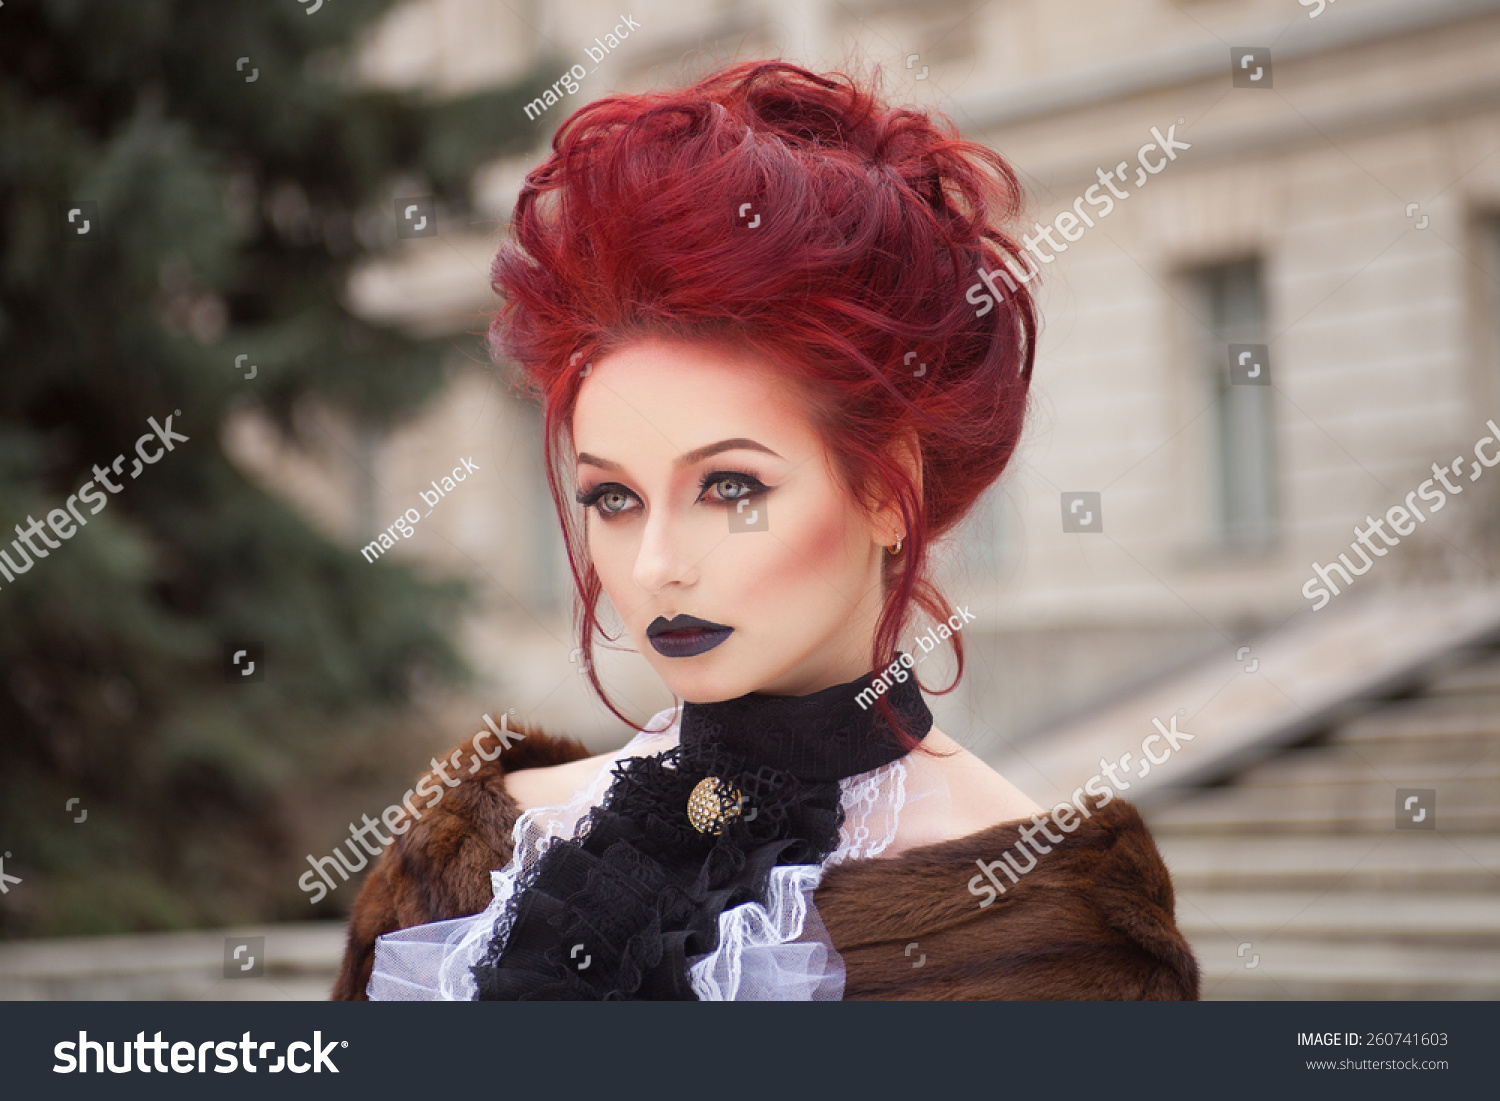 Fashion style Makeup red Gothic for girls